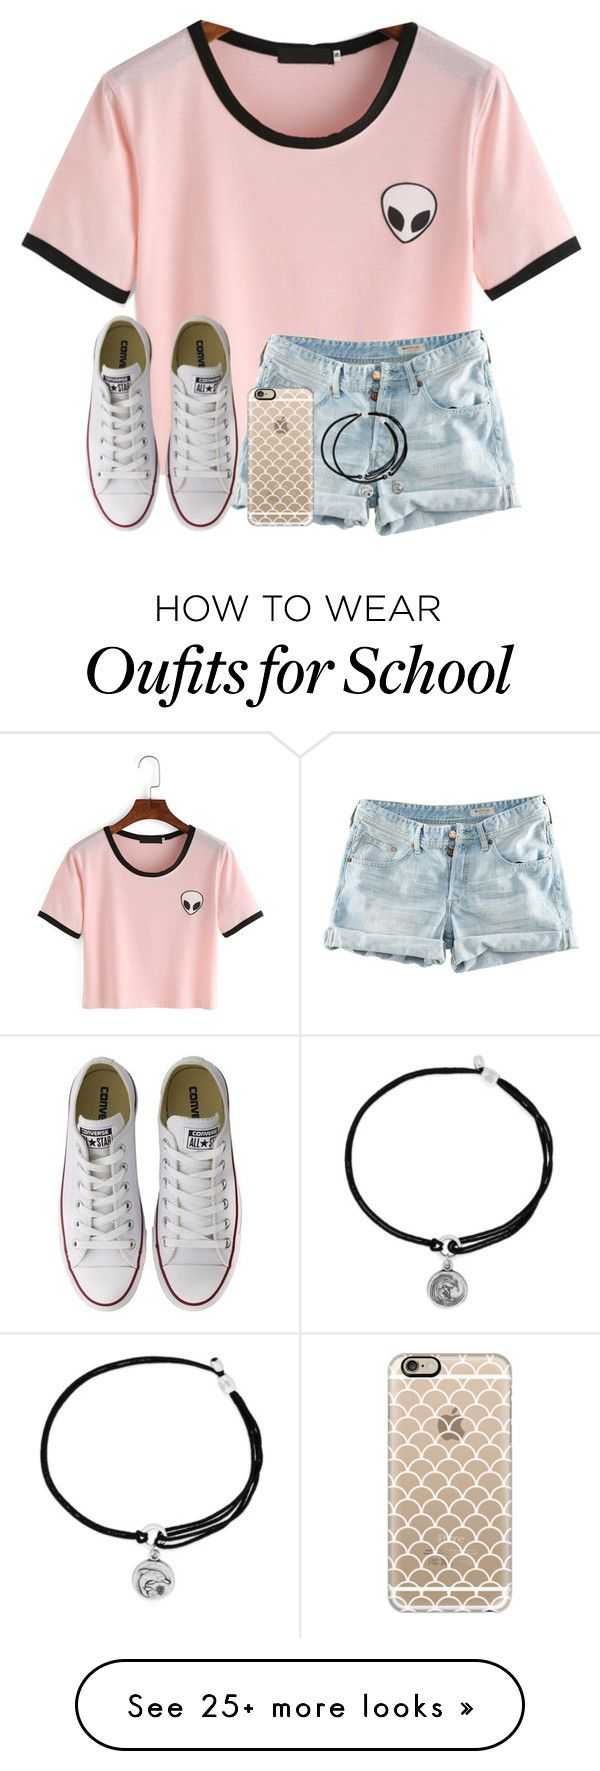 """""""Let's Hope I'm Not Late To School Today!"""" by twaayy on Polyvore featuring H&M, Converse, Casetify and Alex and Ani"""